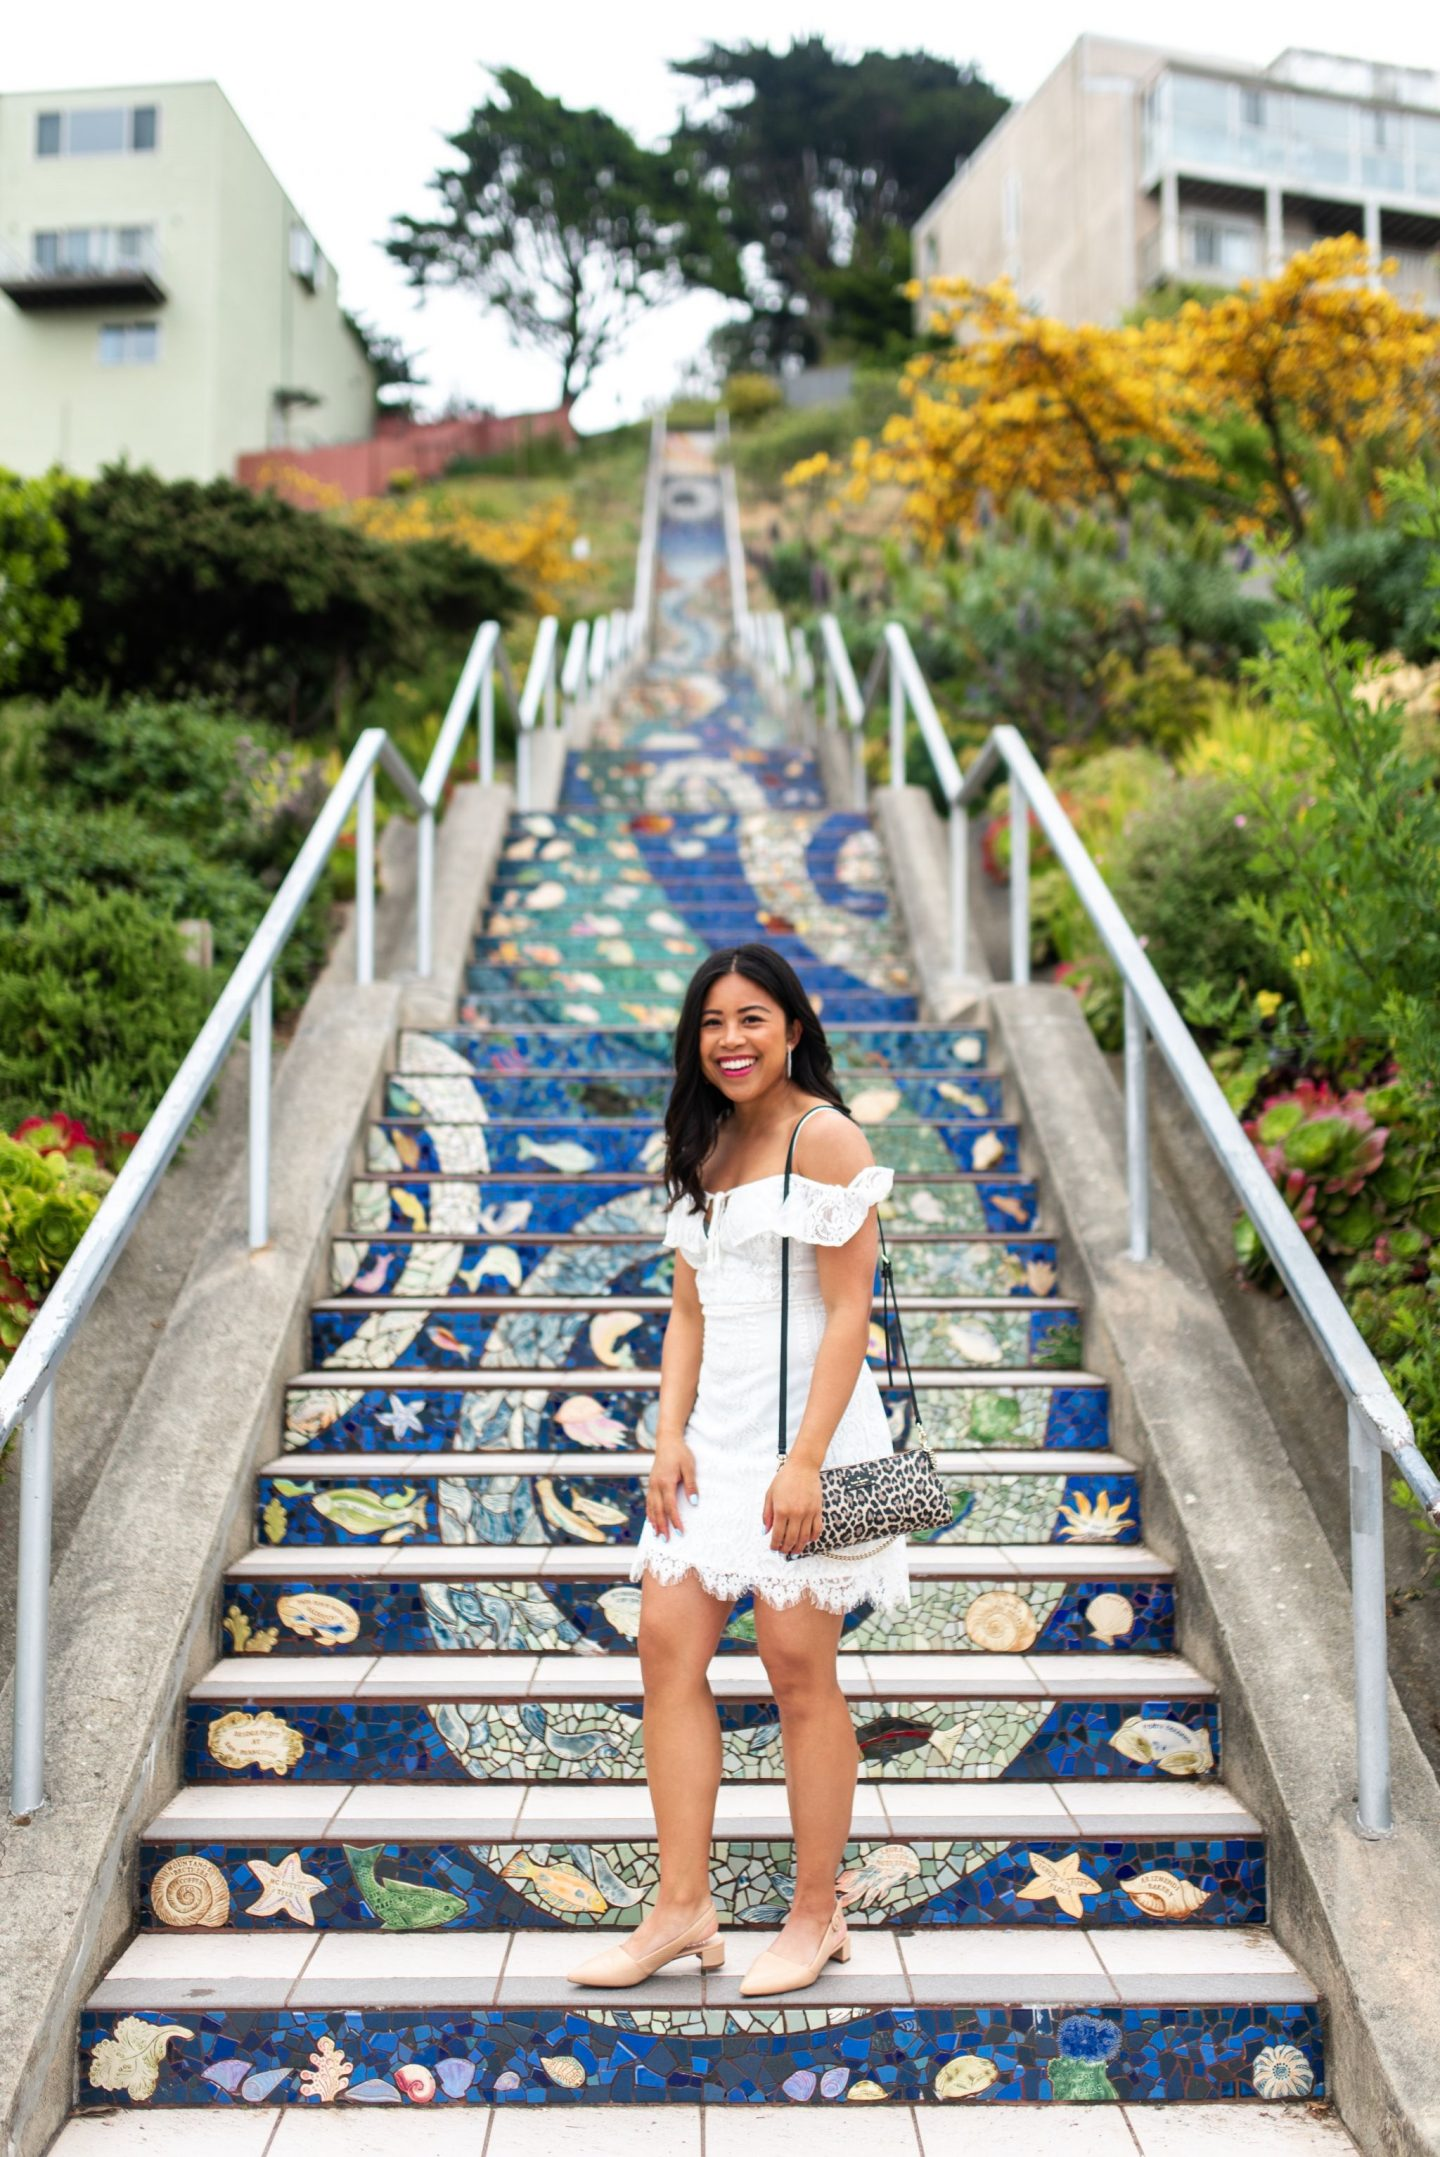 Mosaic Staircase in San Francisco